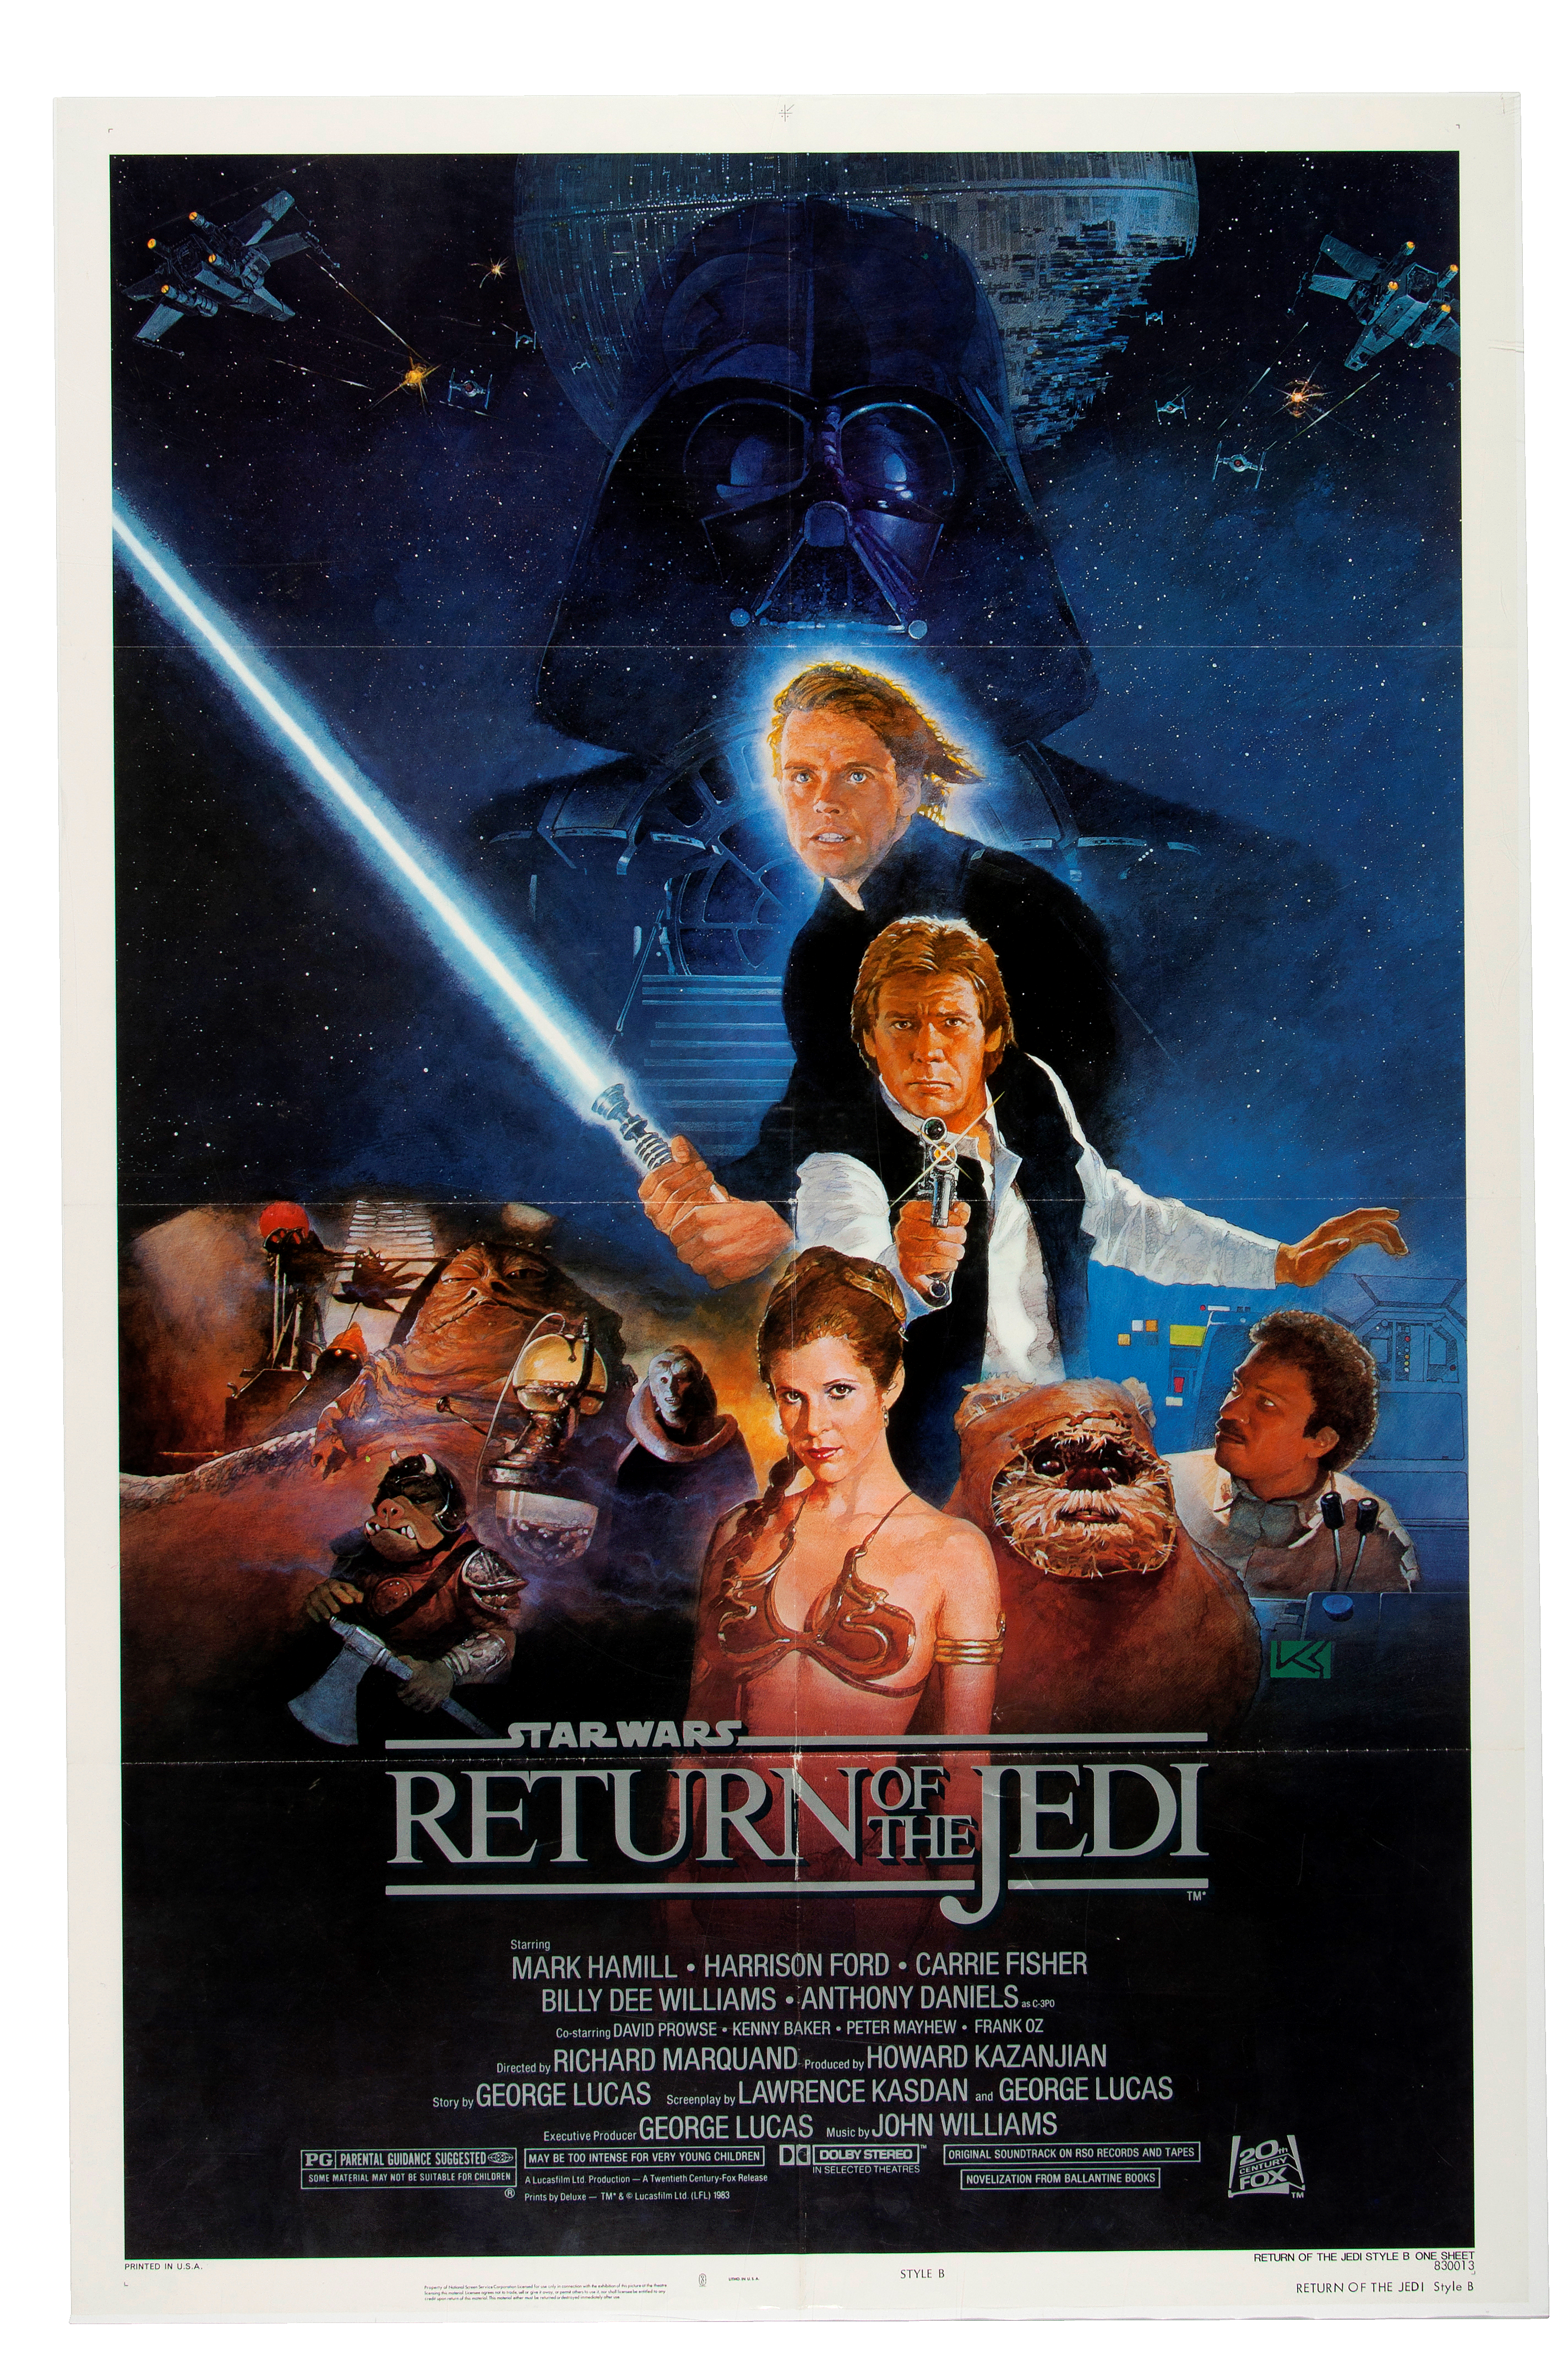 ROTJ Poster